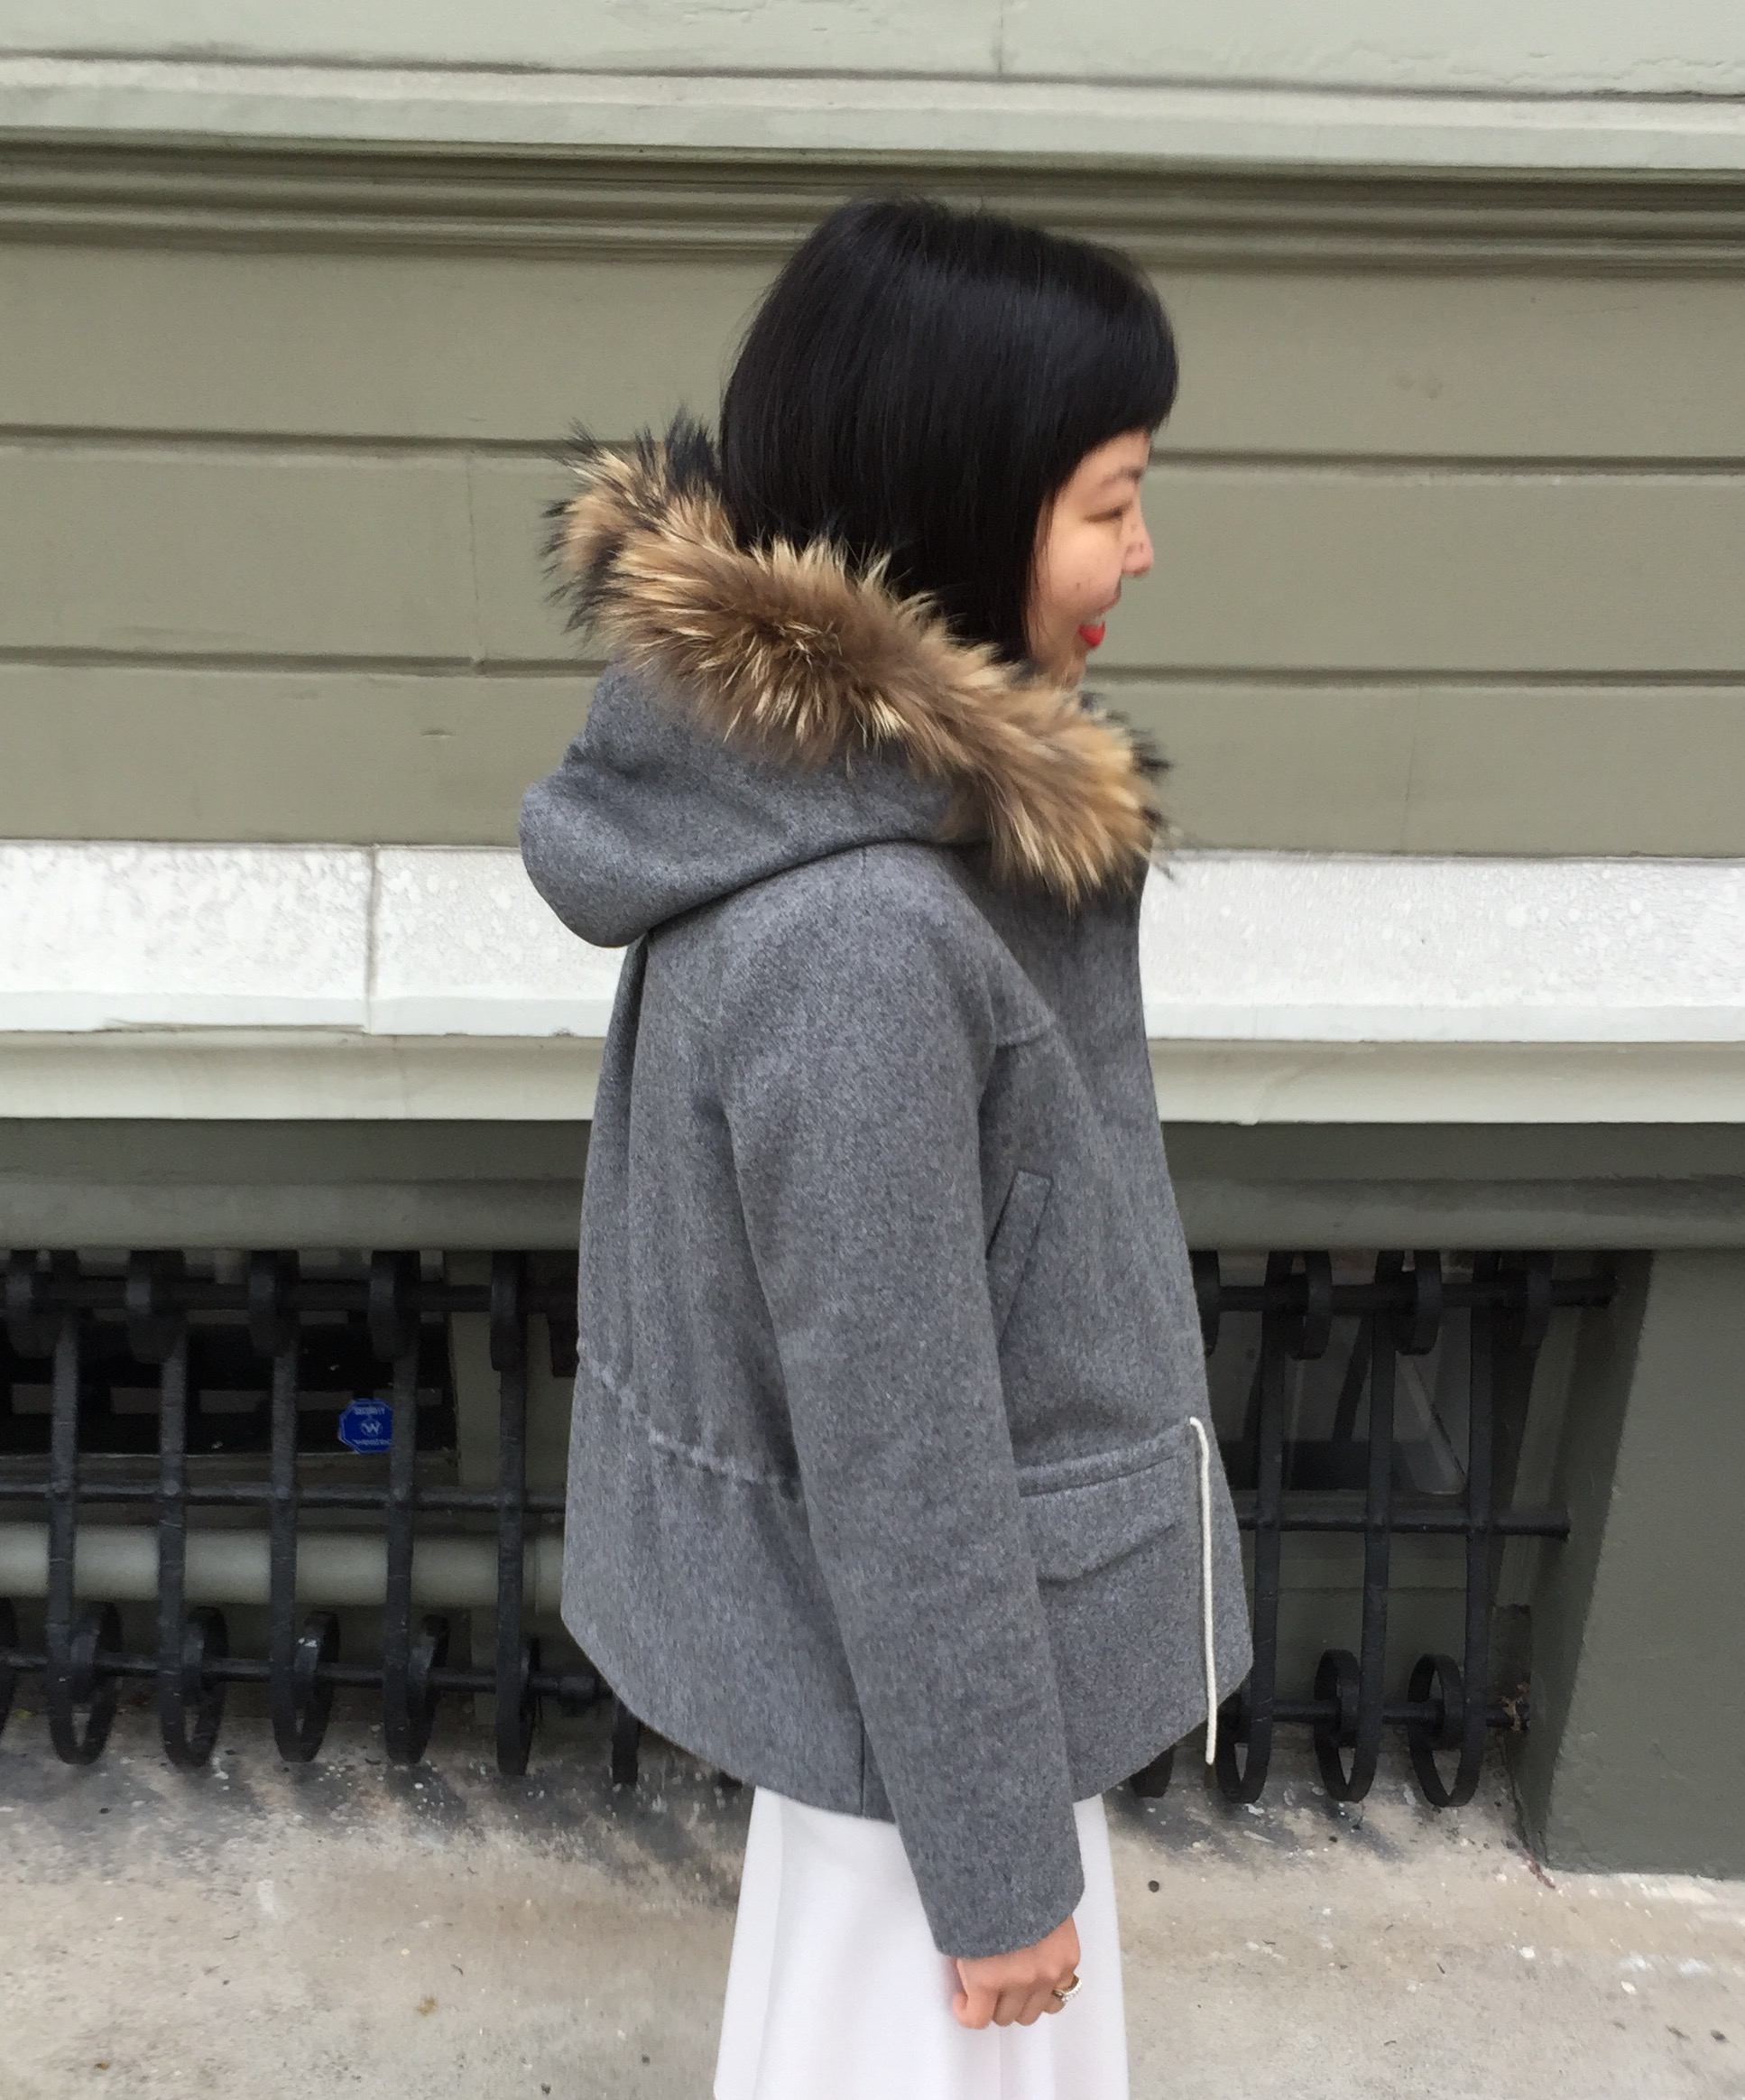 the row – WHAT HELEN WORE TODAY